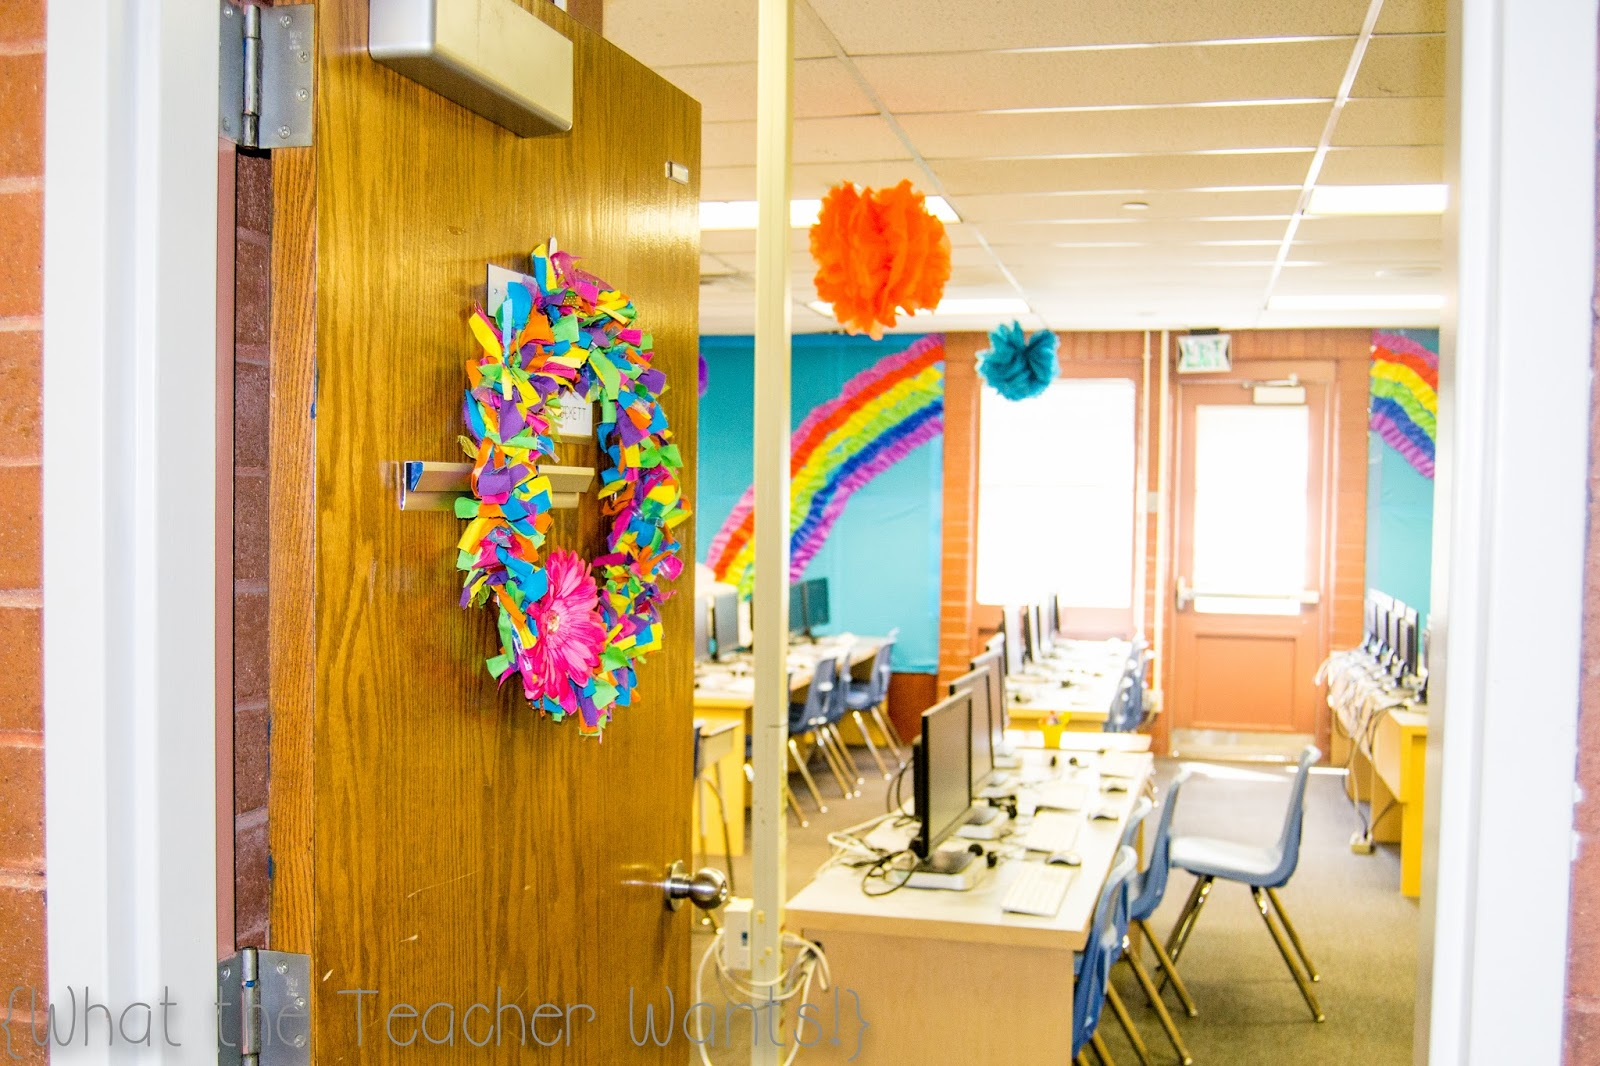 Classroom Rainbow Ideas : What the teacher wants classroom tour compter lab